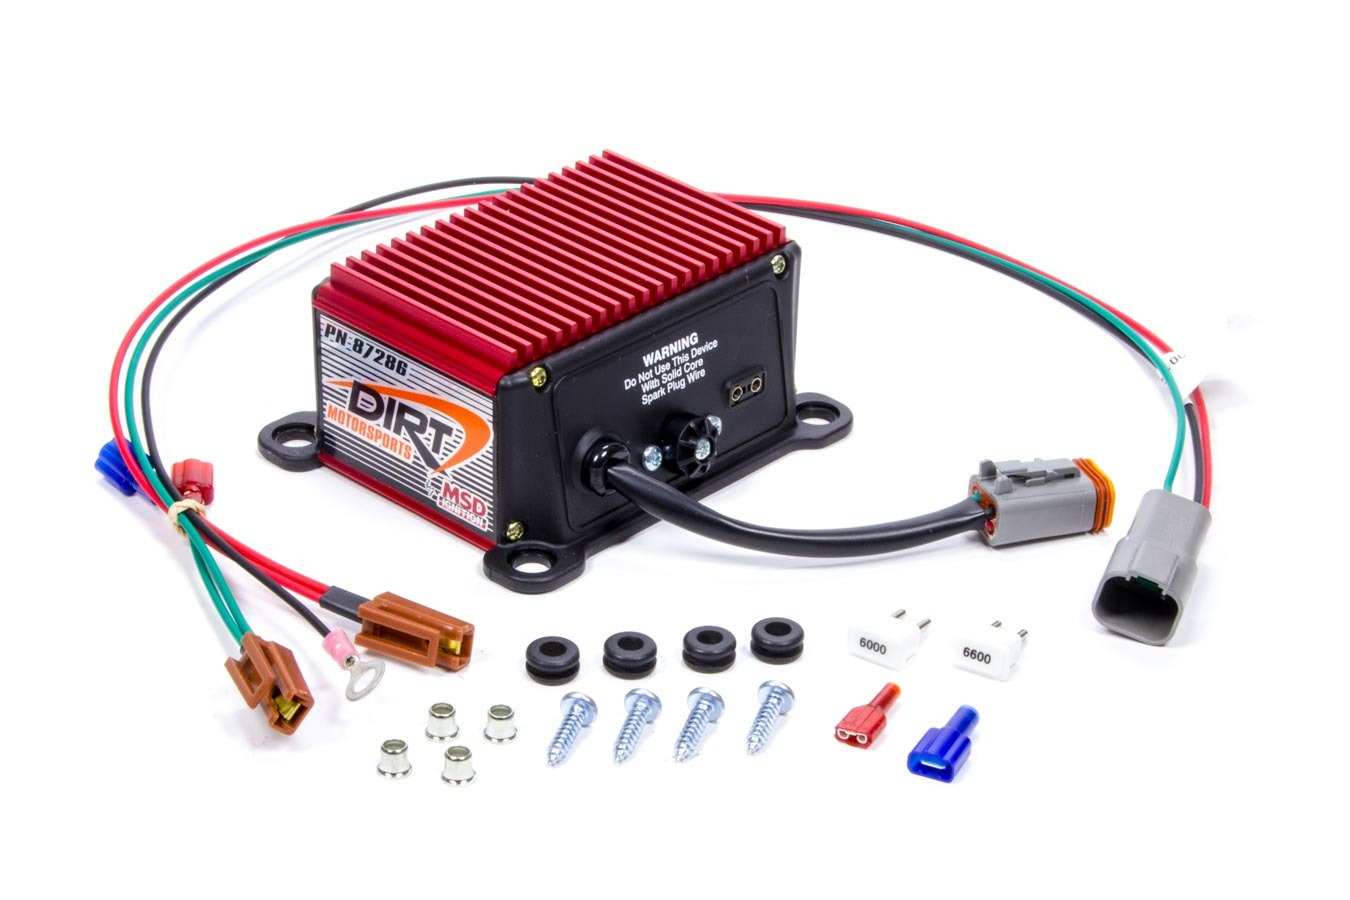 MSD Ignition 87286 Rev Limiter, D.I.R.T Spec, Soft Touch Rev Control, Chip Adjustable, 6000 / 7000 / 8000 RPM Modules, Standard Points Ignition Systems, Each